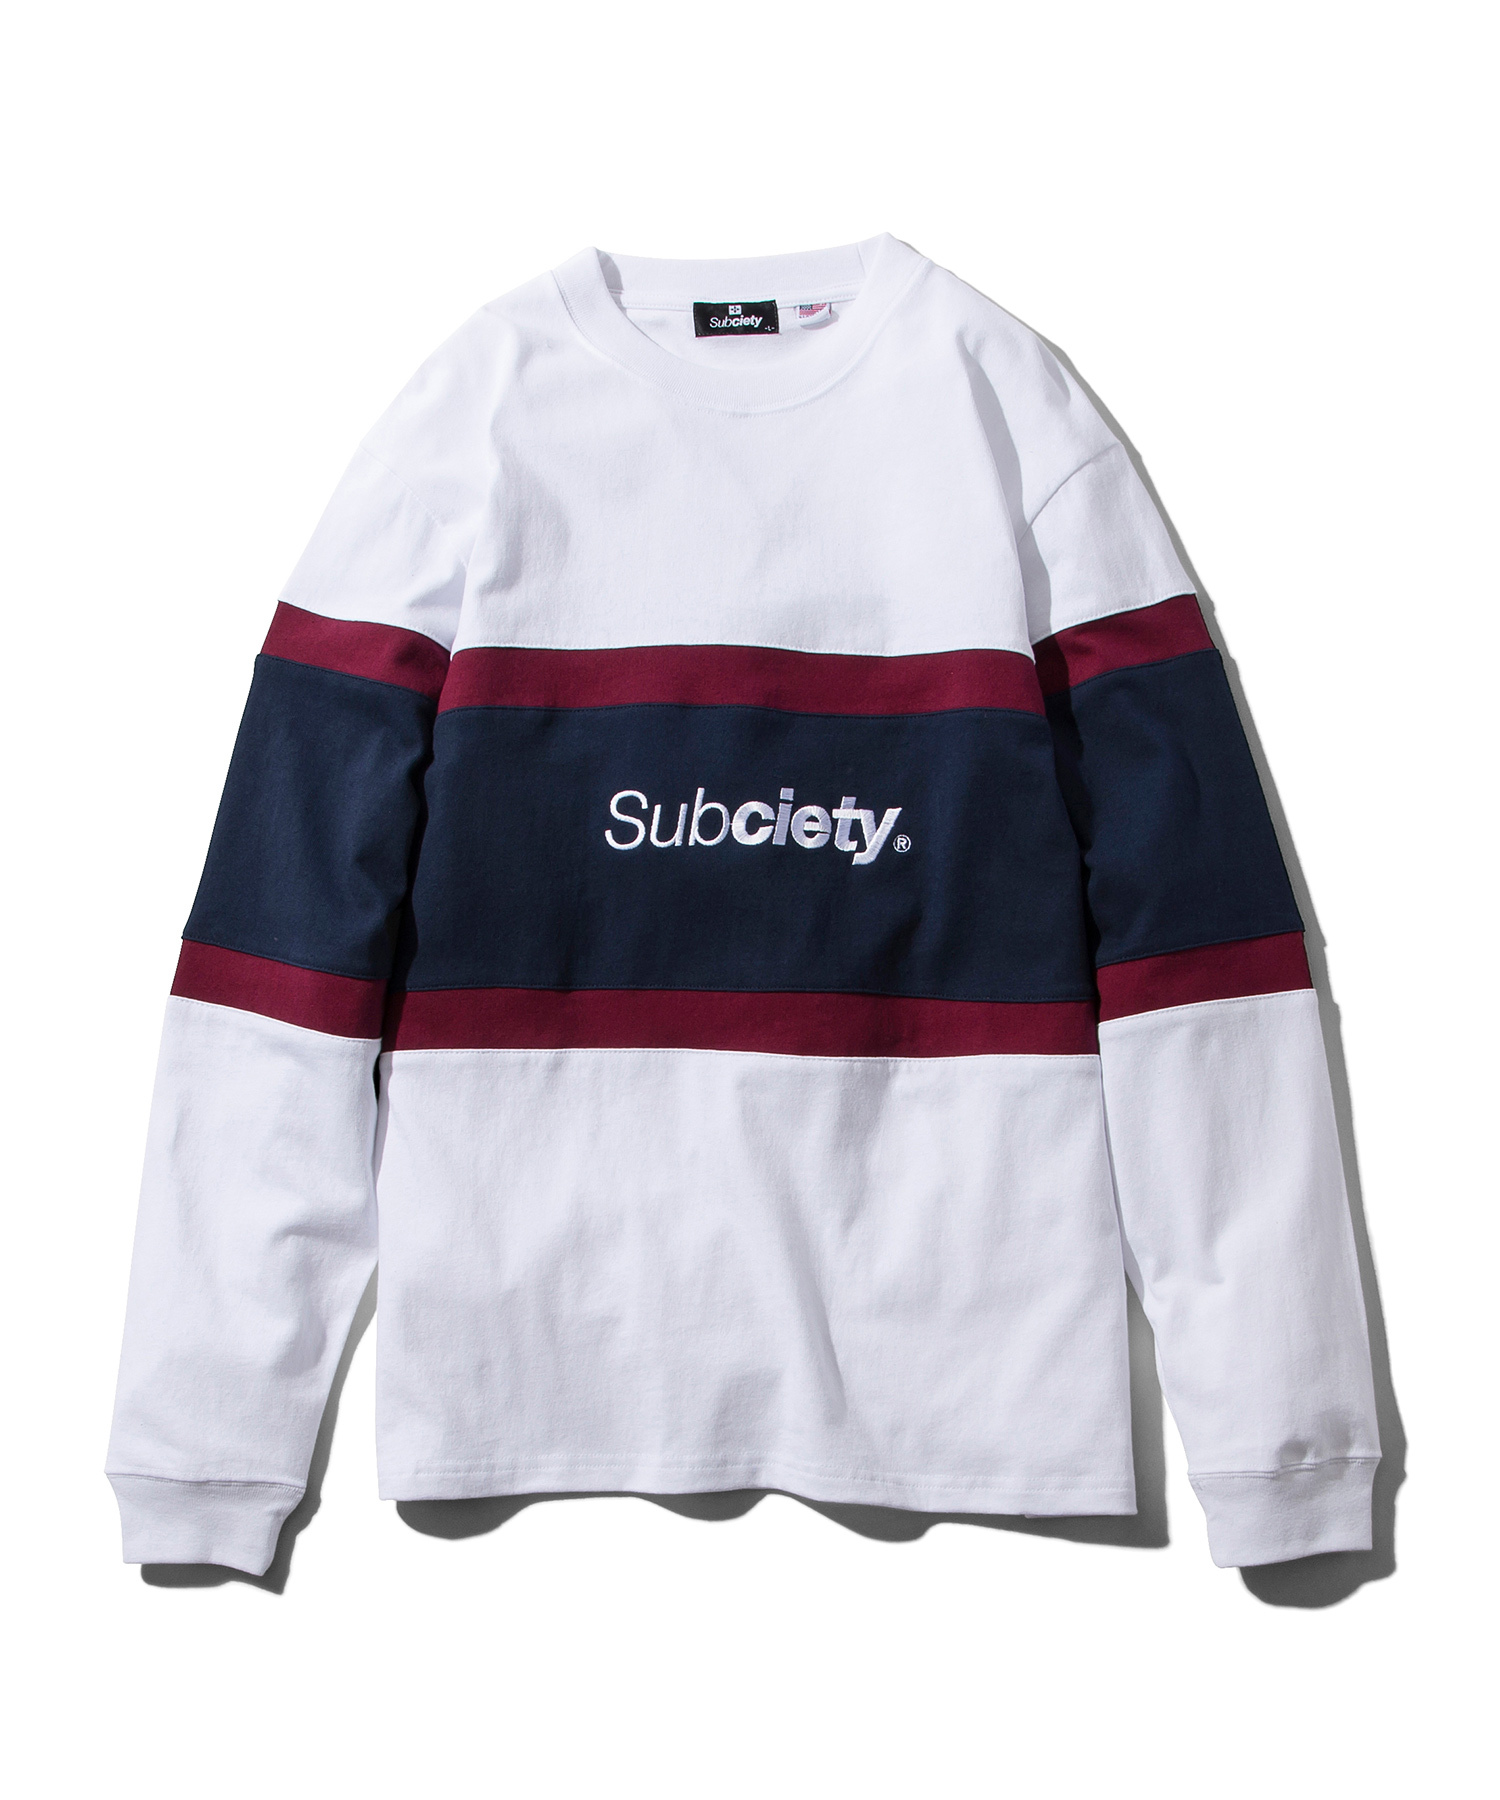 Subciety(サブサエティ) | SWITCHED L/S (White)